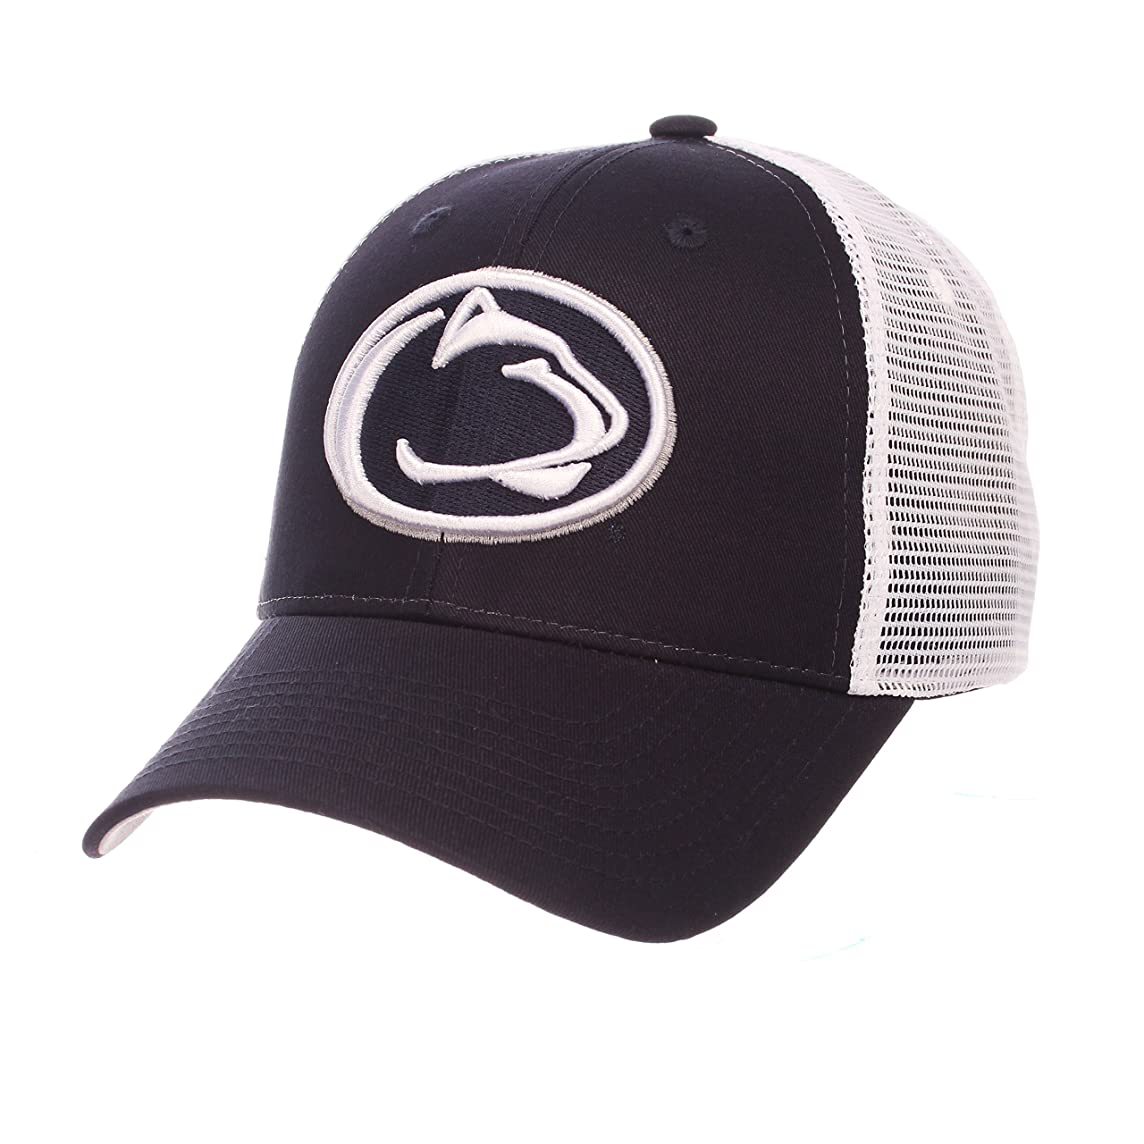 ZHATS Penn State University PSU Nittany Lions Blue Trucker Top Big Rig Mesh Adult Mens/Boys Adjustable Snapback Hat/Cap